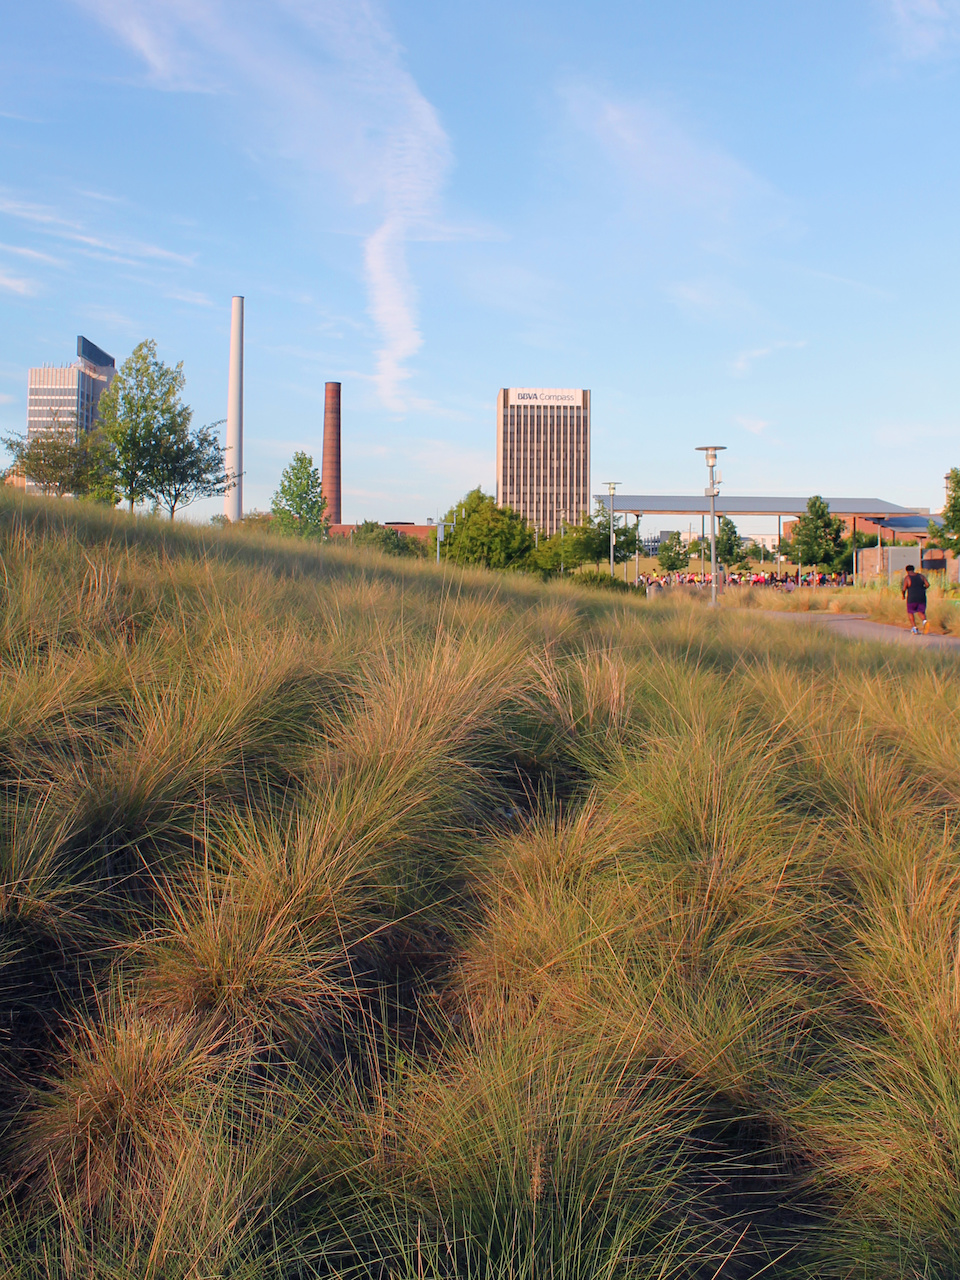 A gorgeous day at Railroad Park